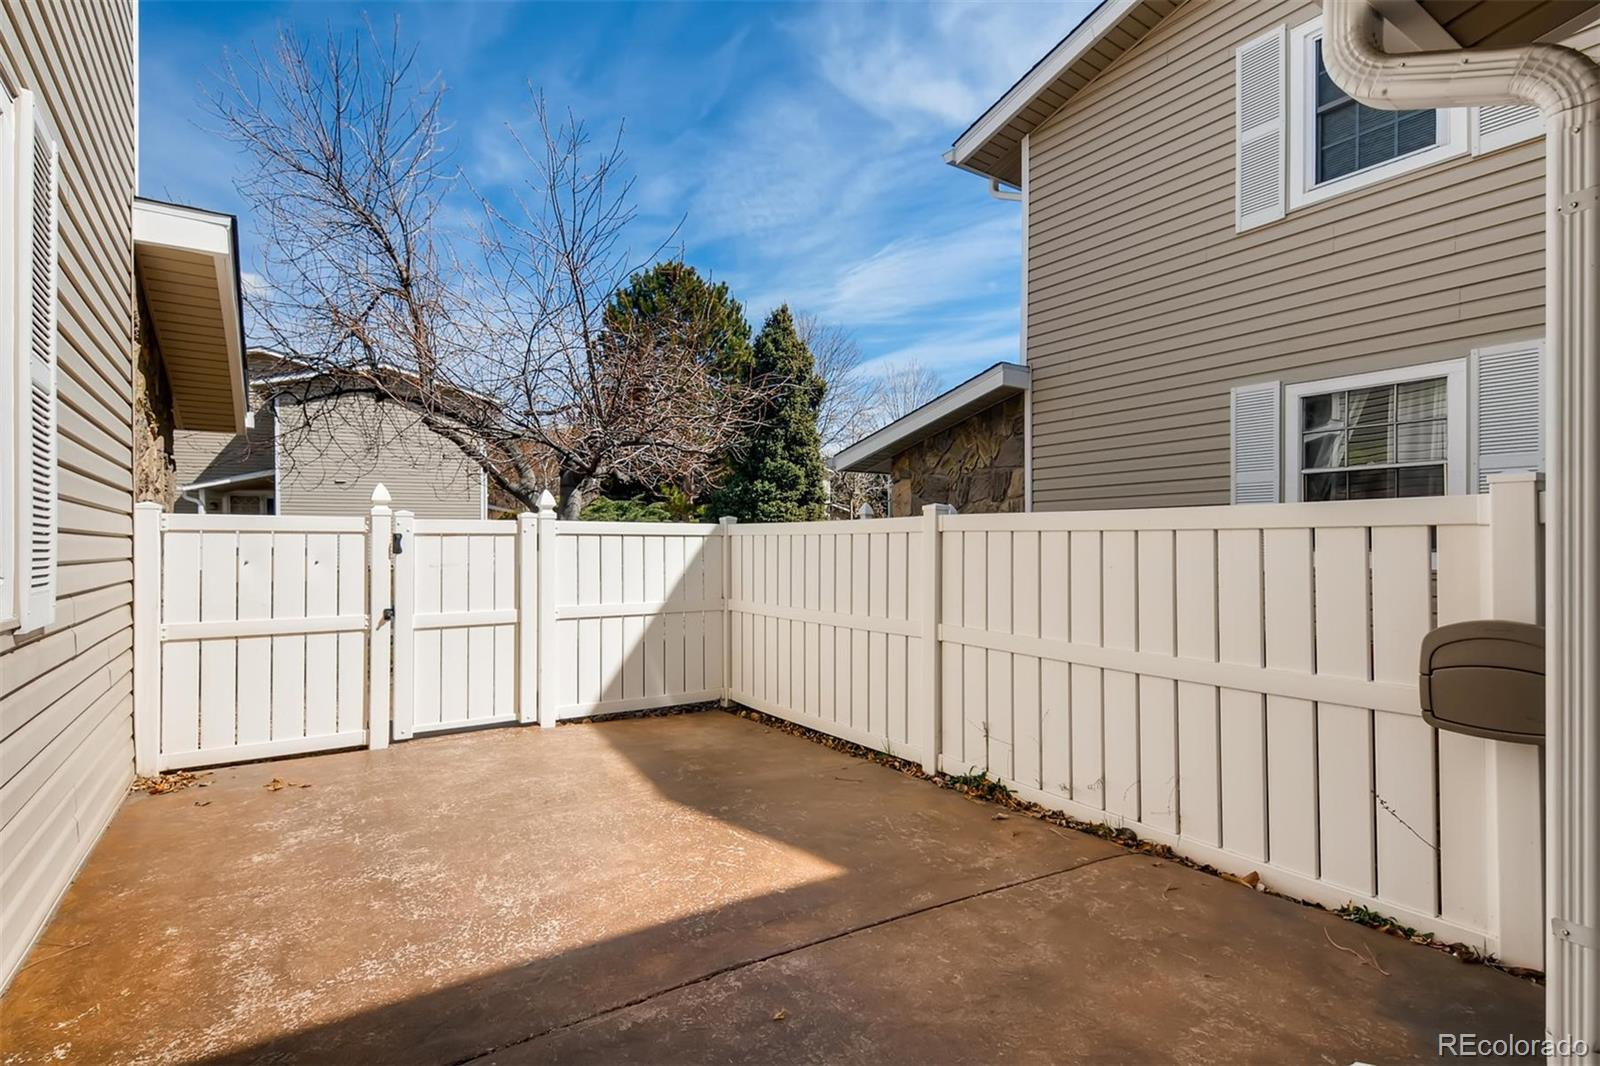 MLS# 3825448 - 29 - 3236 S Heather Gardens Way, Aurora, CO 80014